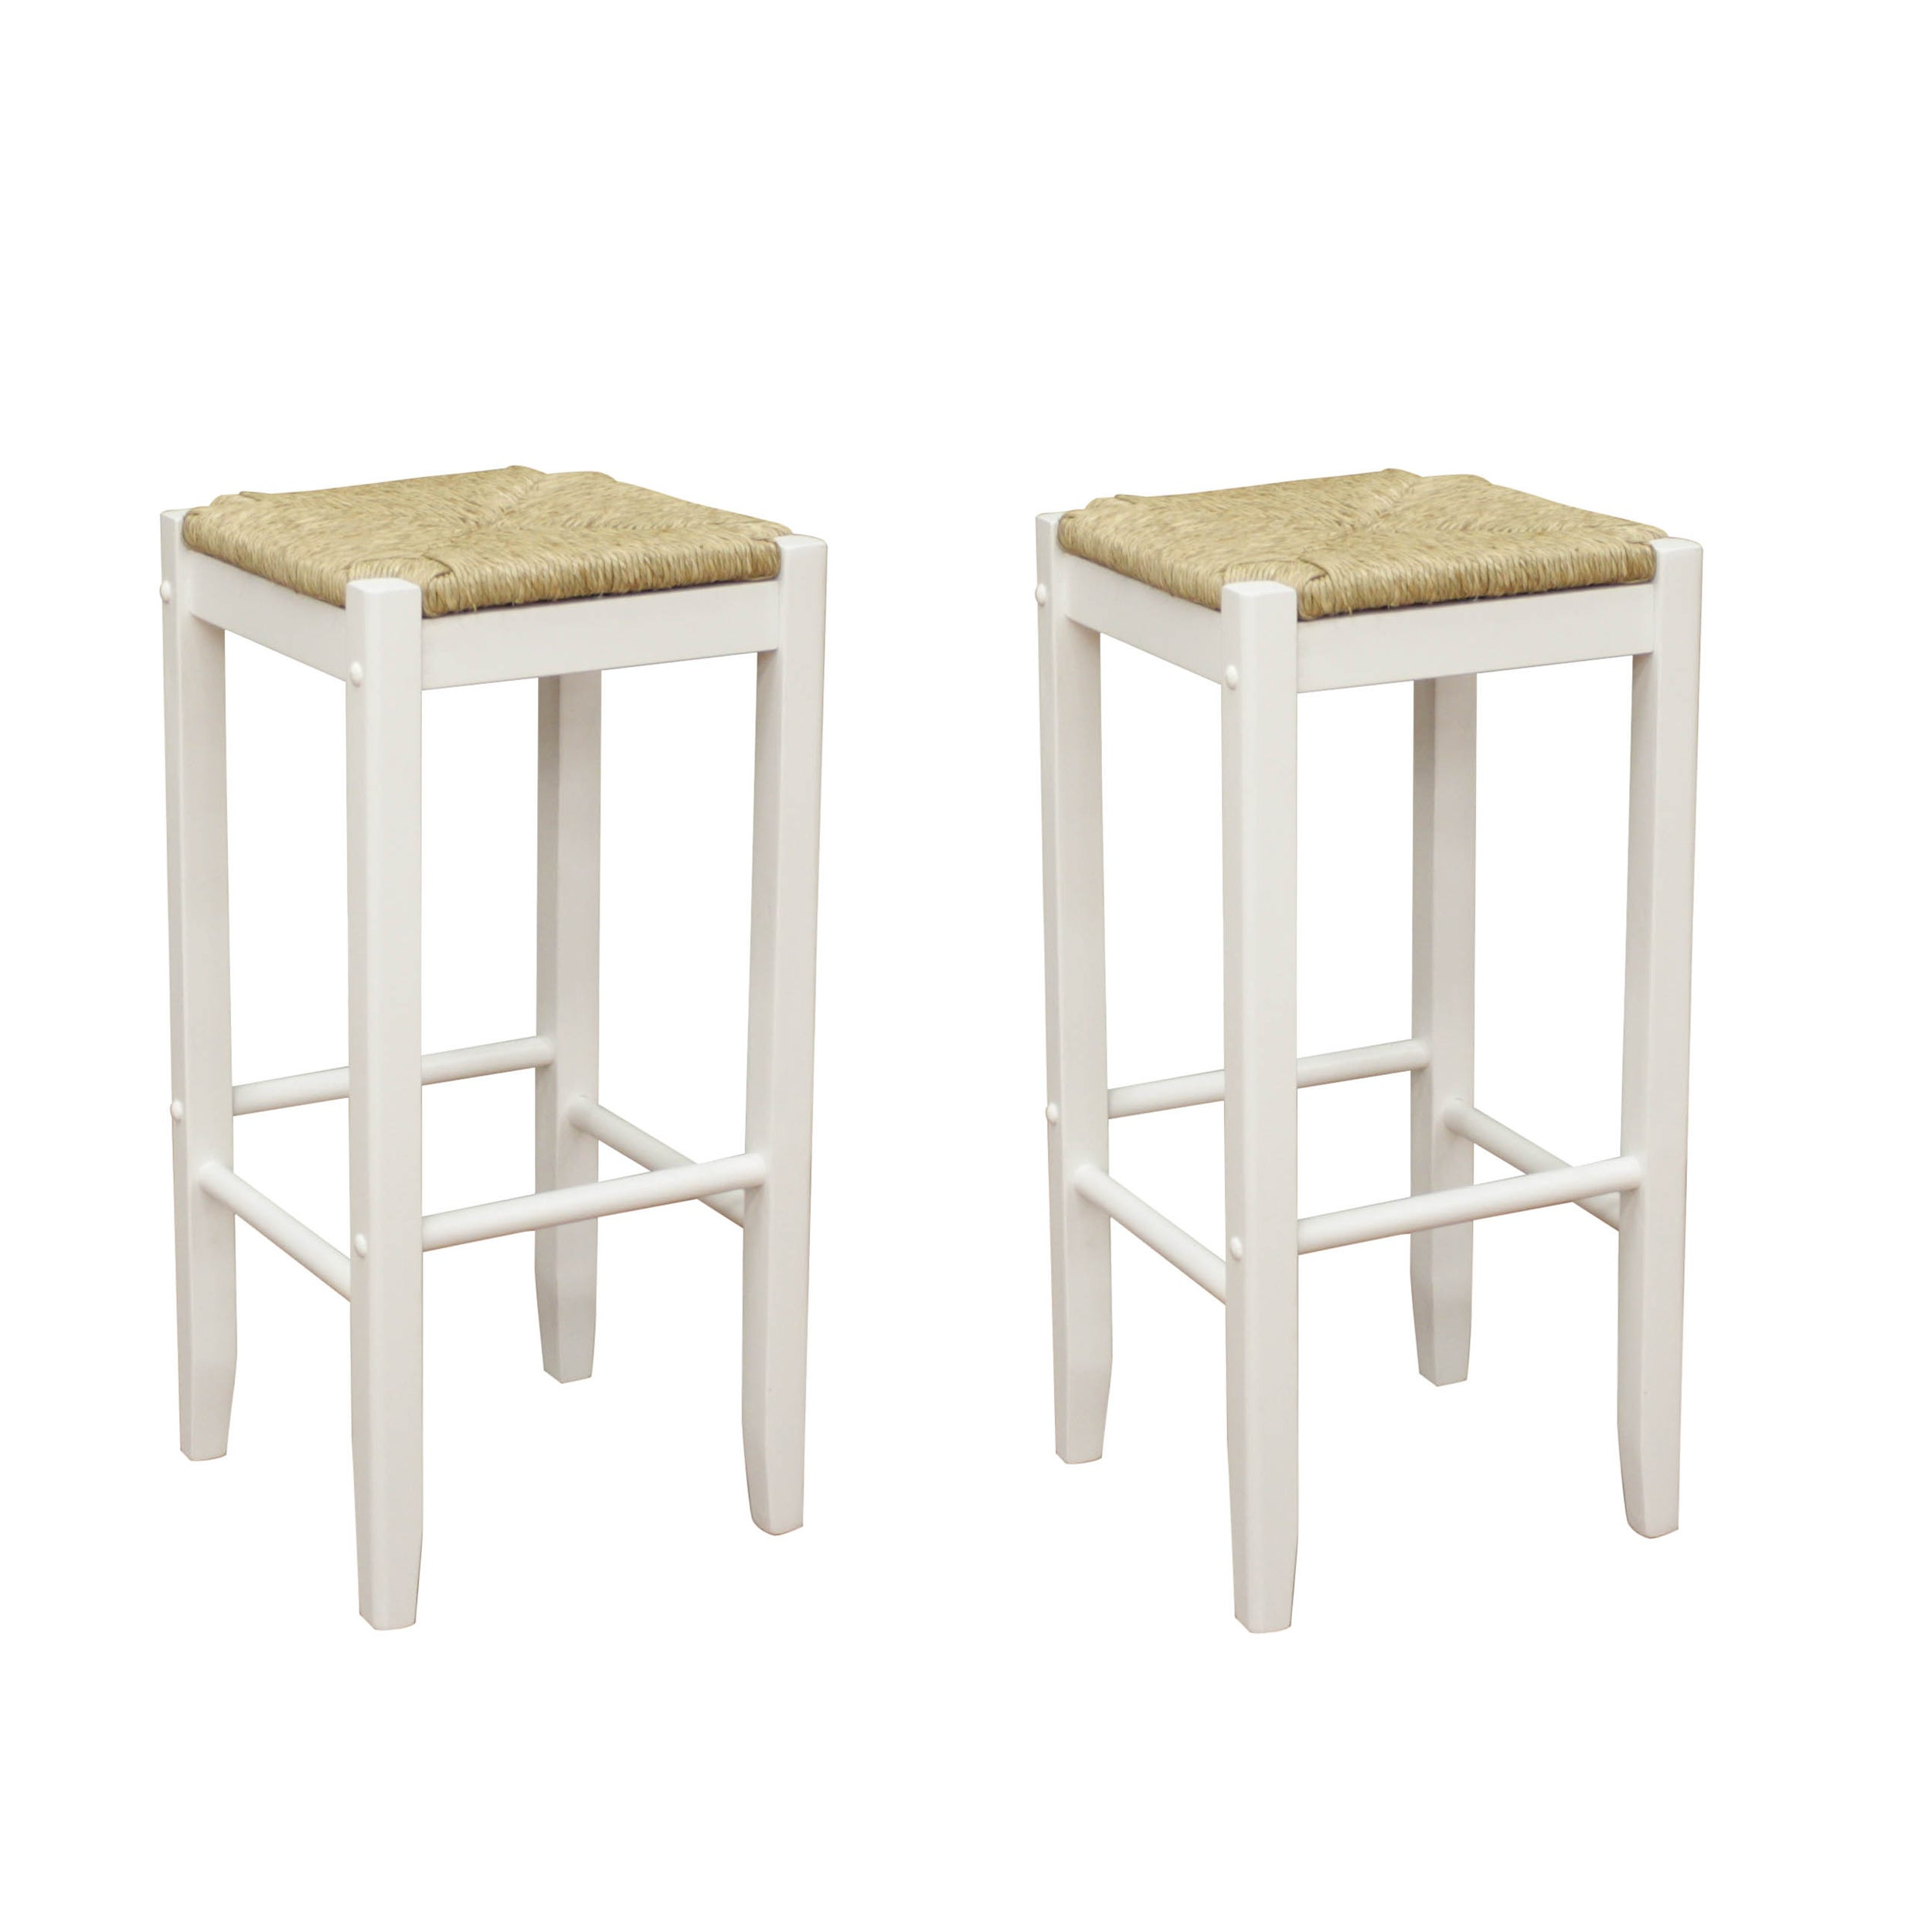 Roanoke White Wood 24-inch Counter Stools (Set of 2)